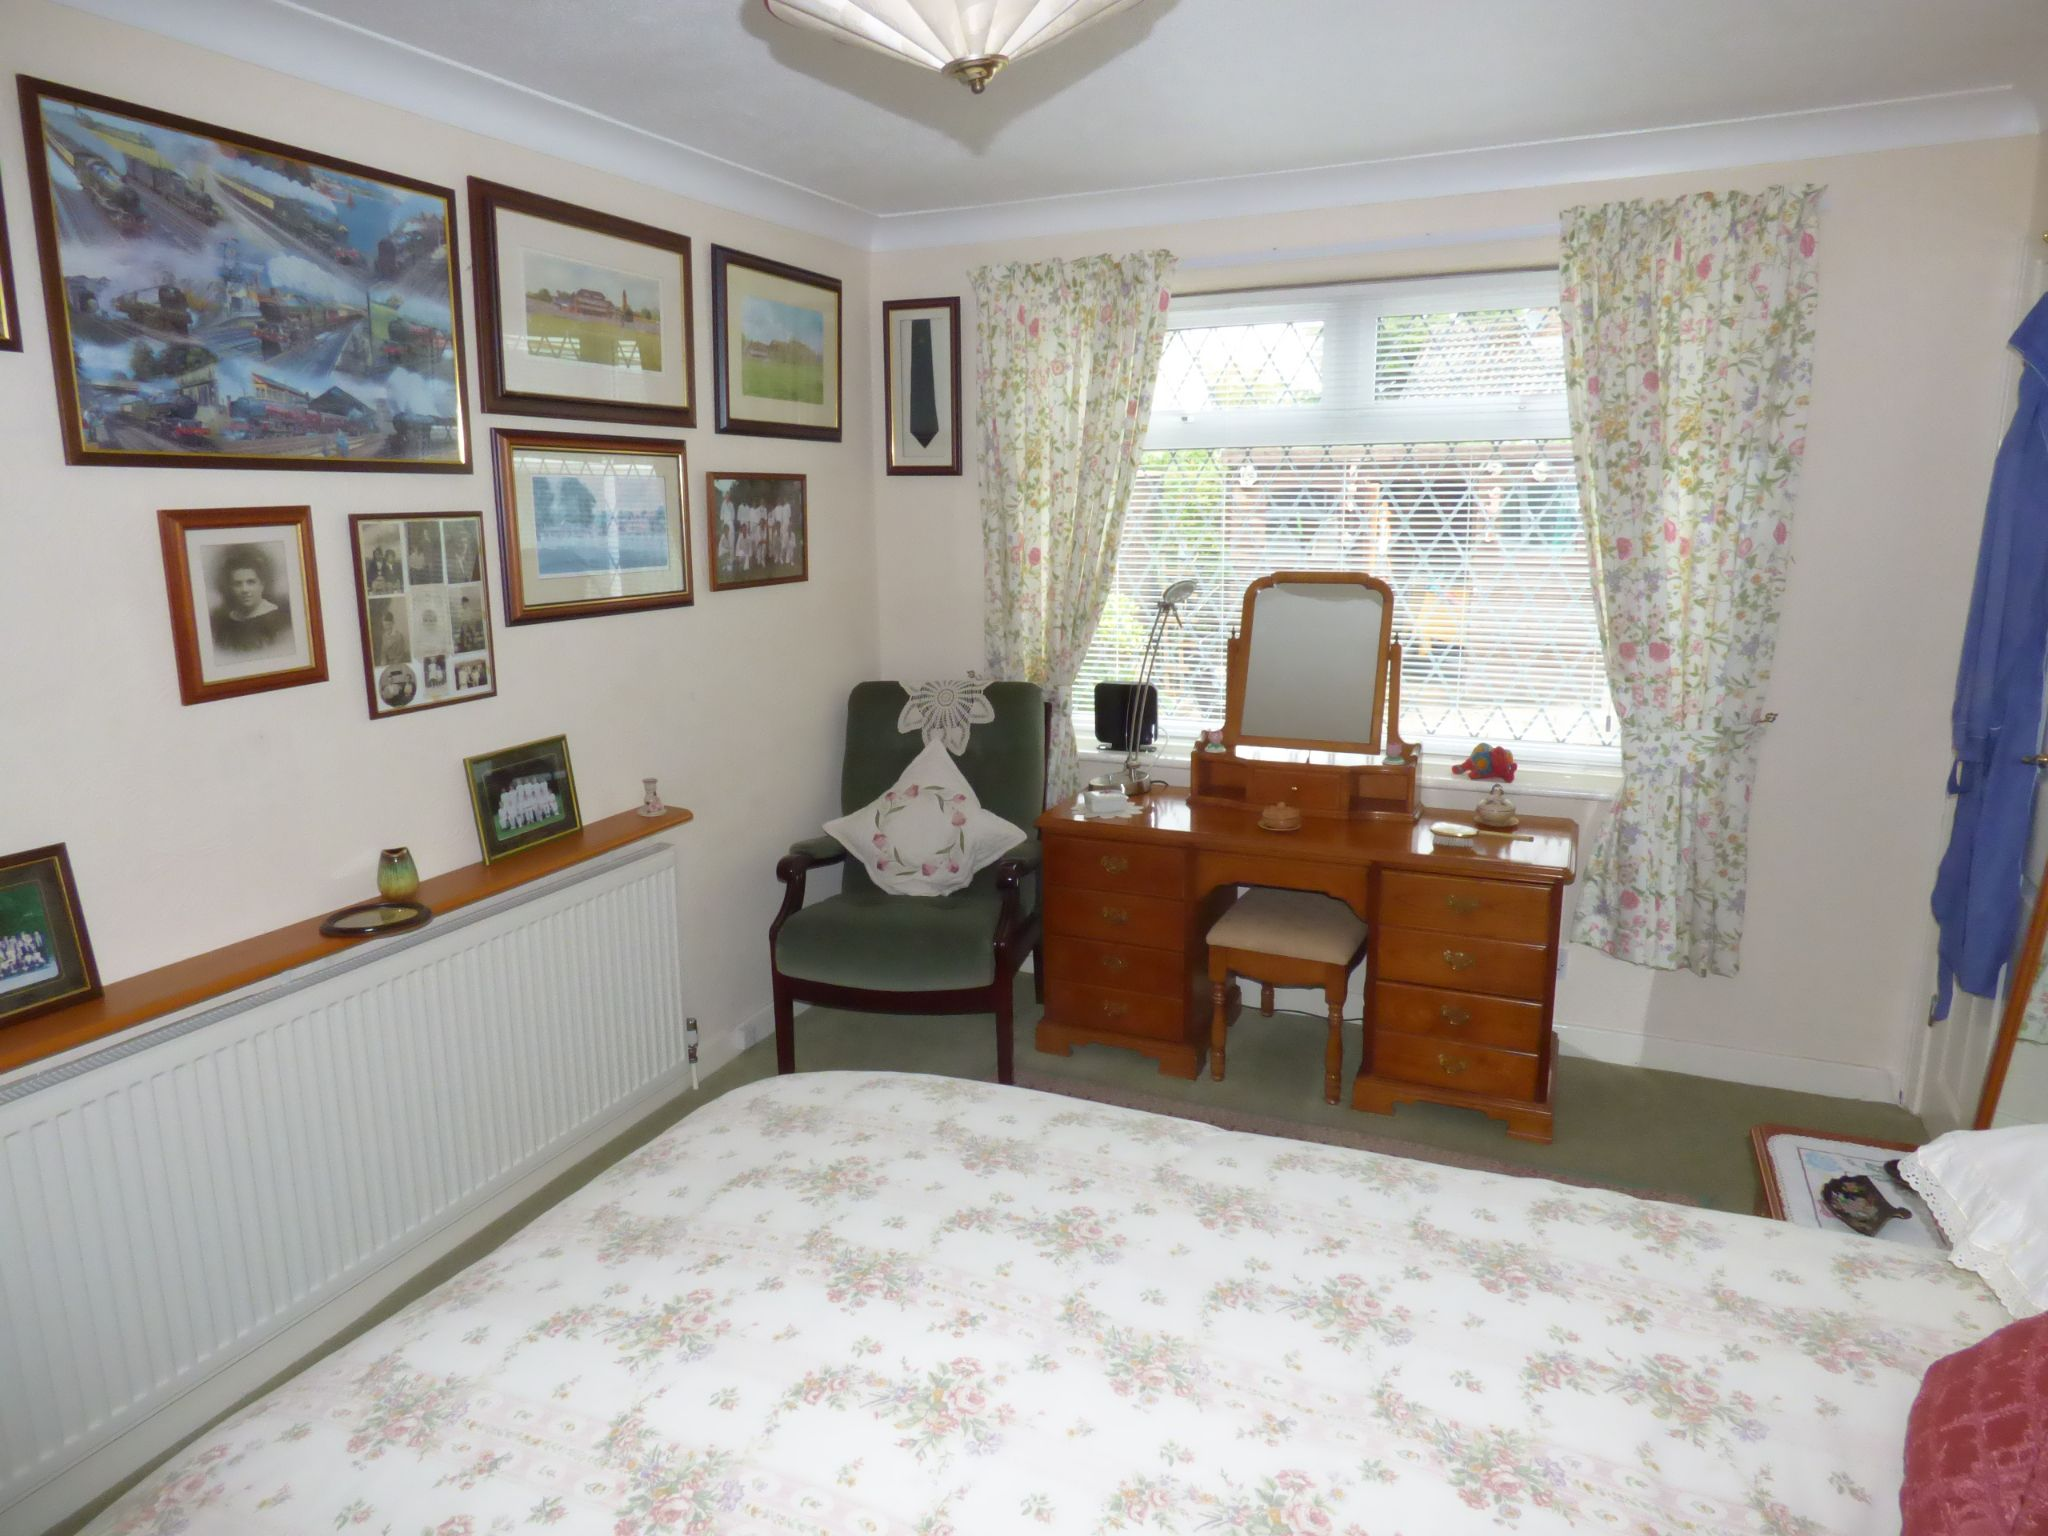 4 Bedroom Detached Bungalow For Sale - Photograph 11